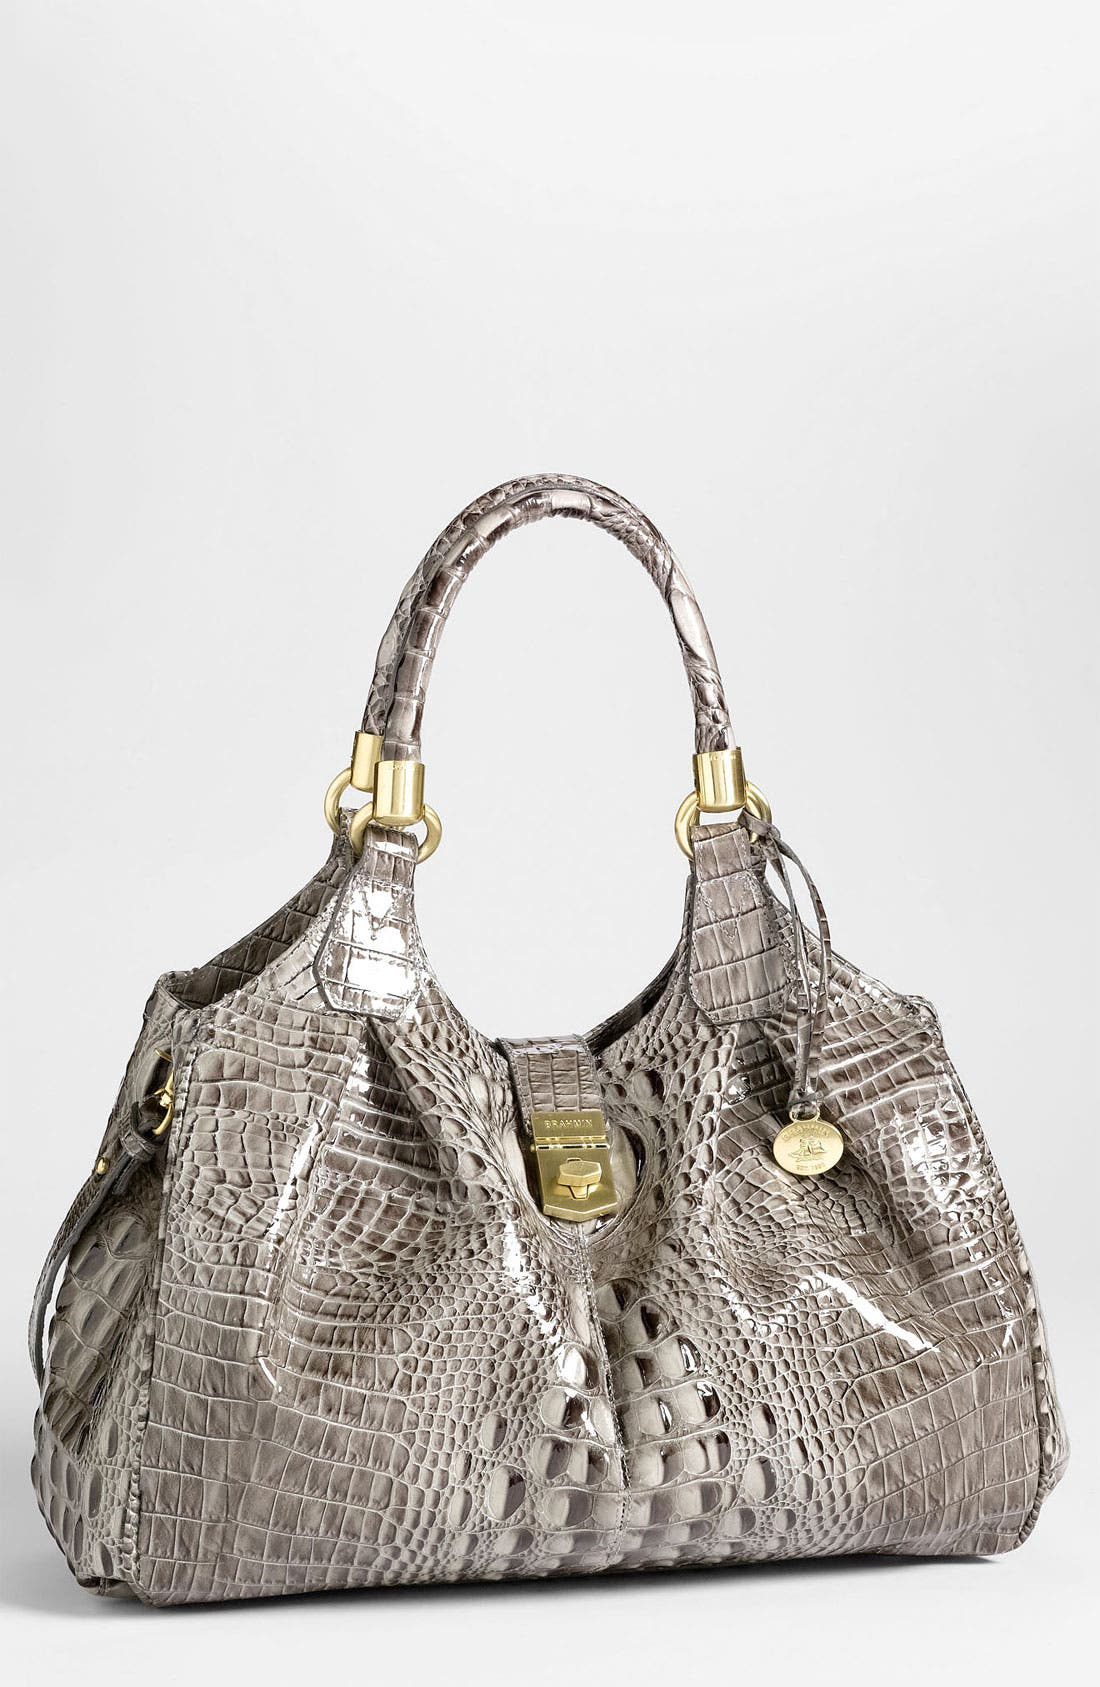 Alternate Image 1 Selected - Brahmin 'Elisa' Handbag